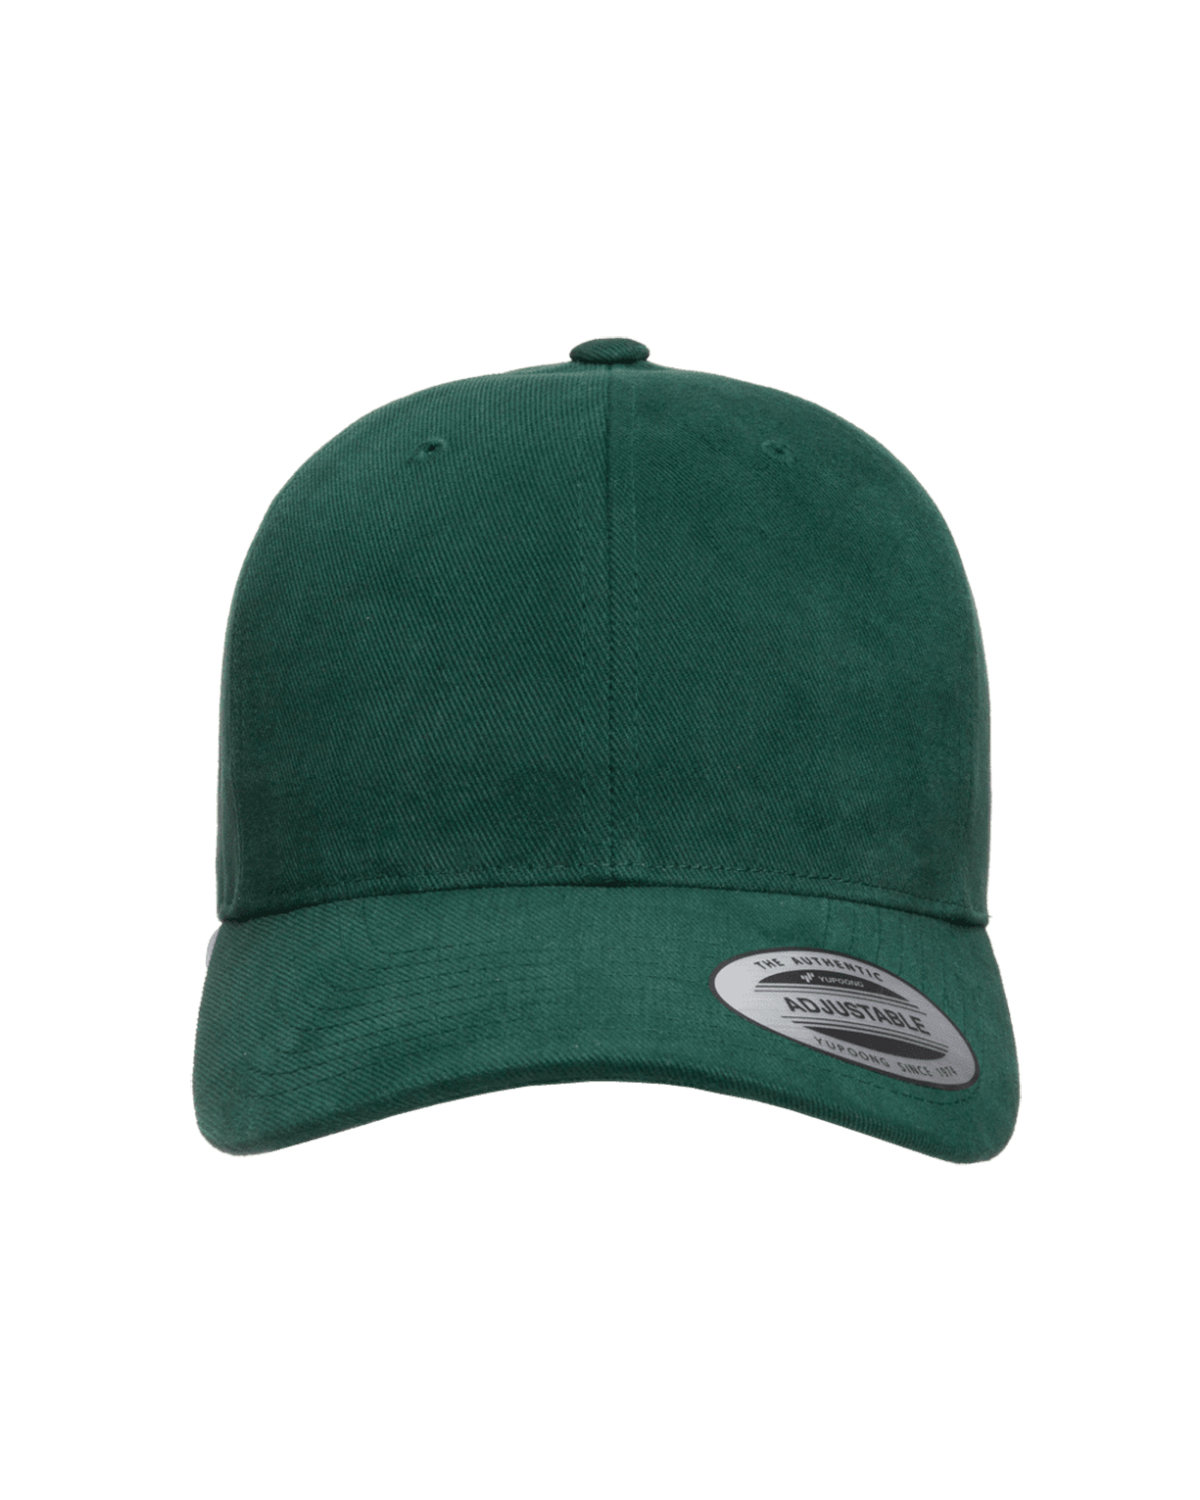 Yupoong Adult Brushed Cotton Twill Mid-Profile Cap SPRUCE